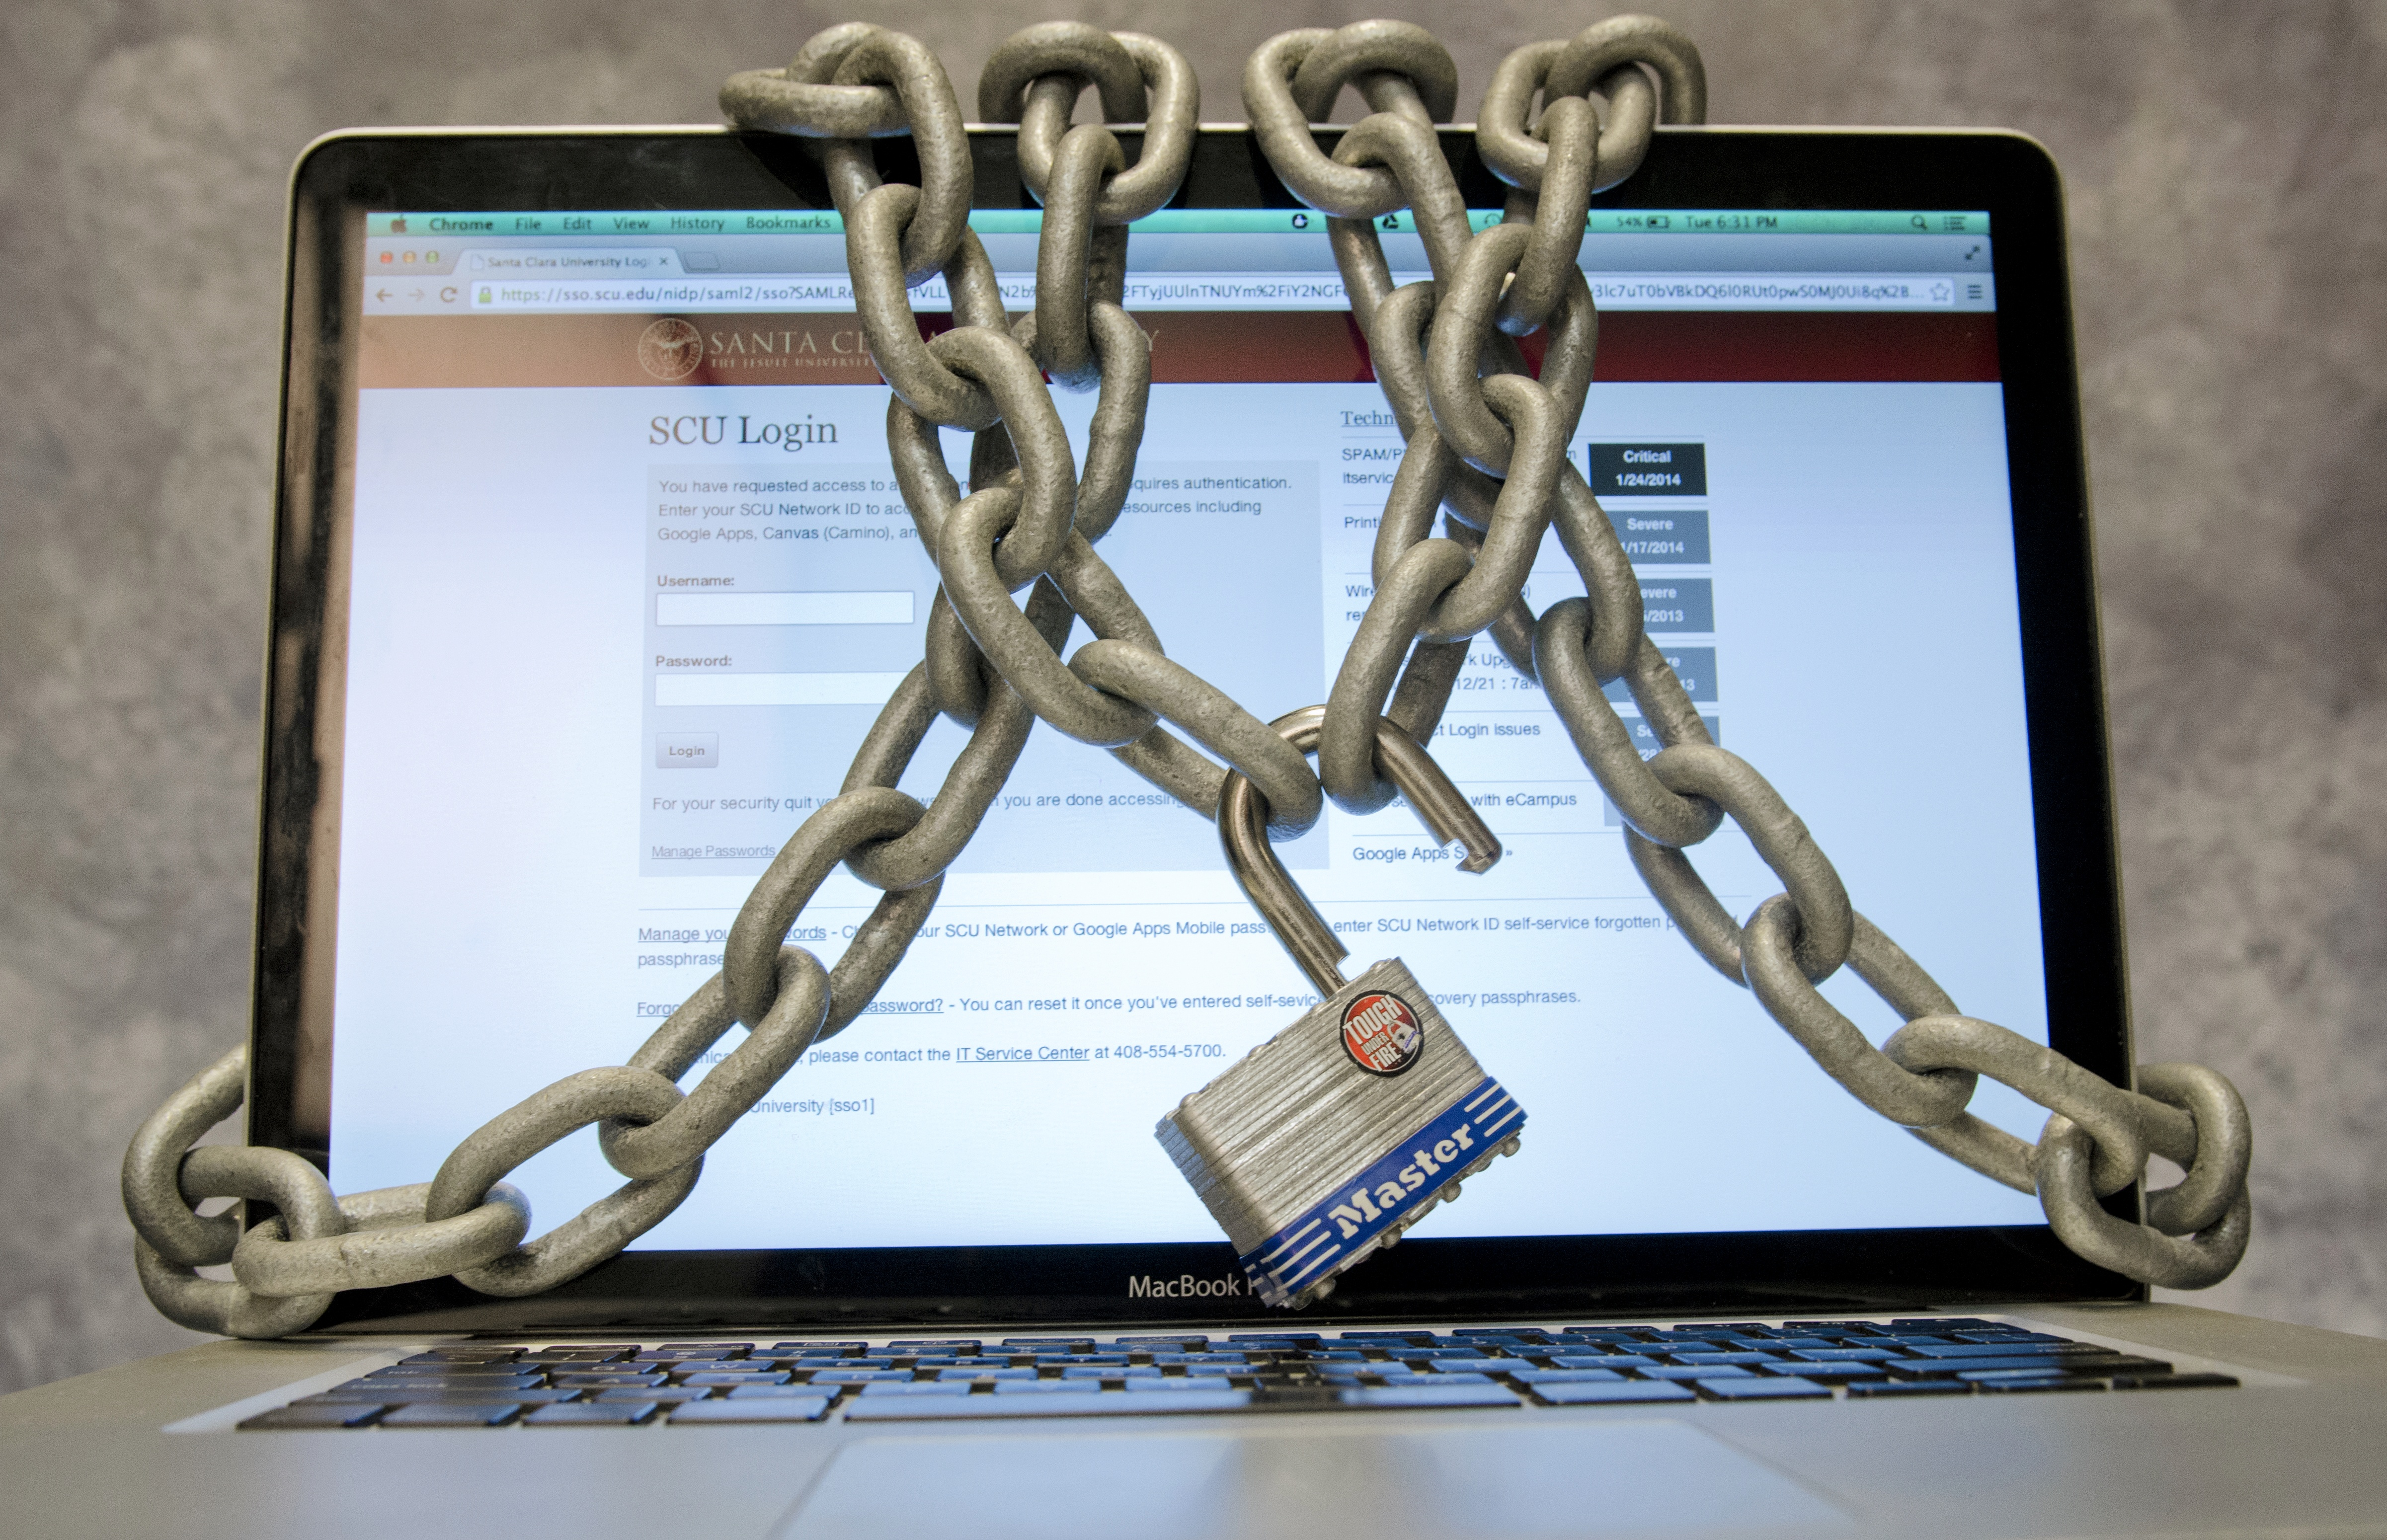 Laptop open onto a login screen with chains and padlock wrapped around it